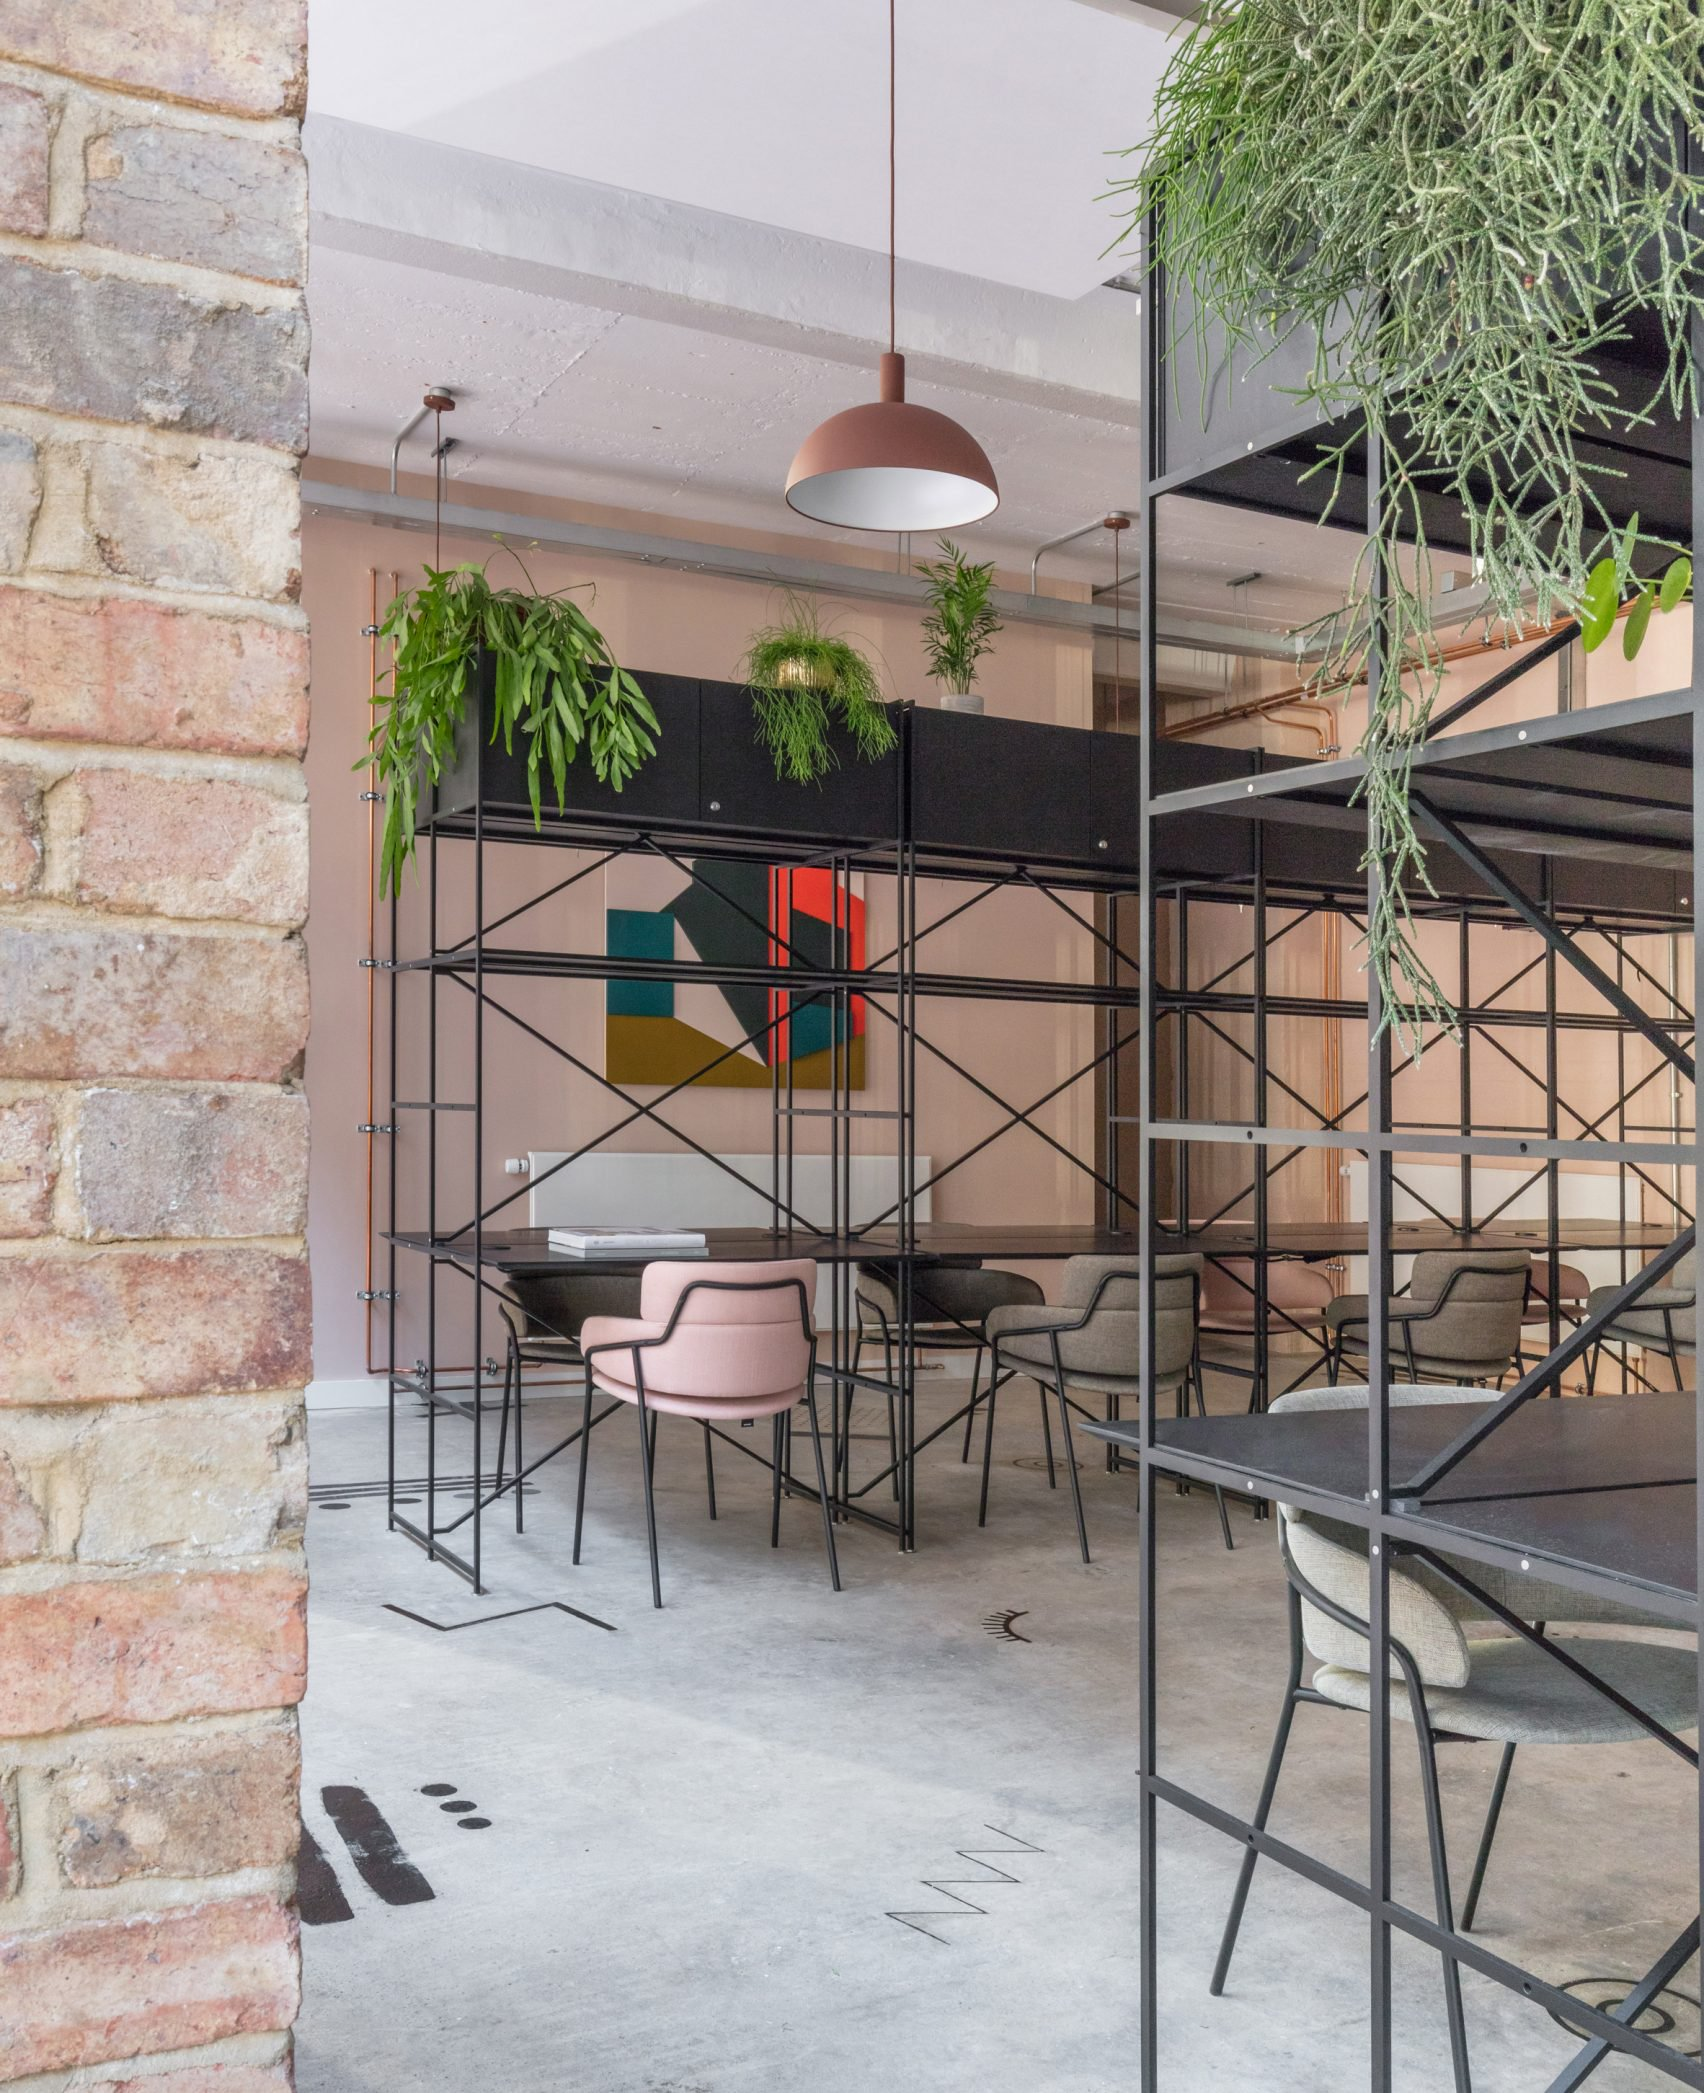 Office Space Design With Creative Inspiration In East London! 7 office space design Office Space Design With Creative Inspiration In East London! Office Space Design With Creative Inspiration In East London 7